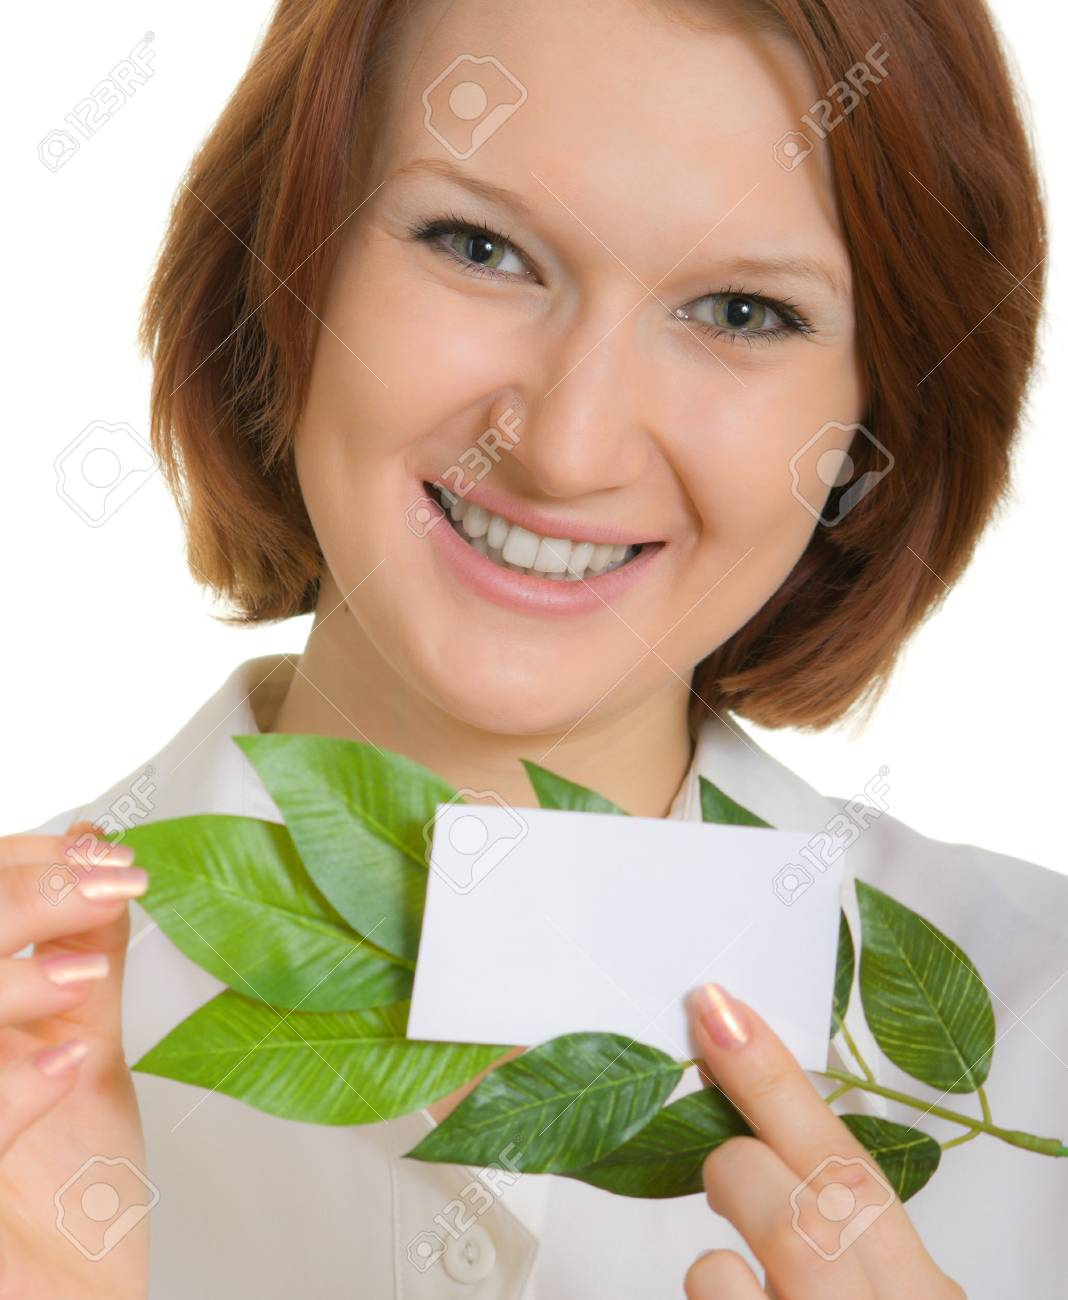 smiling girl with a business card and leaves of plants. Focusing on the eyes Stock Photo - 4567368